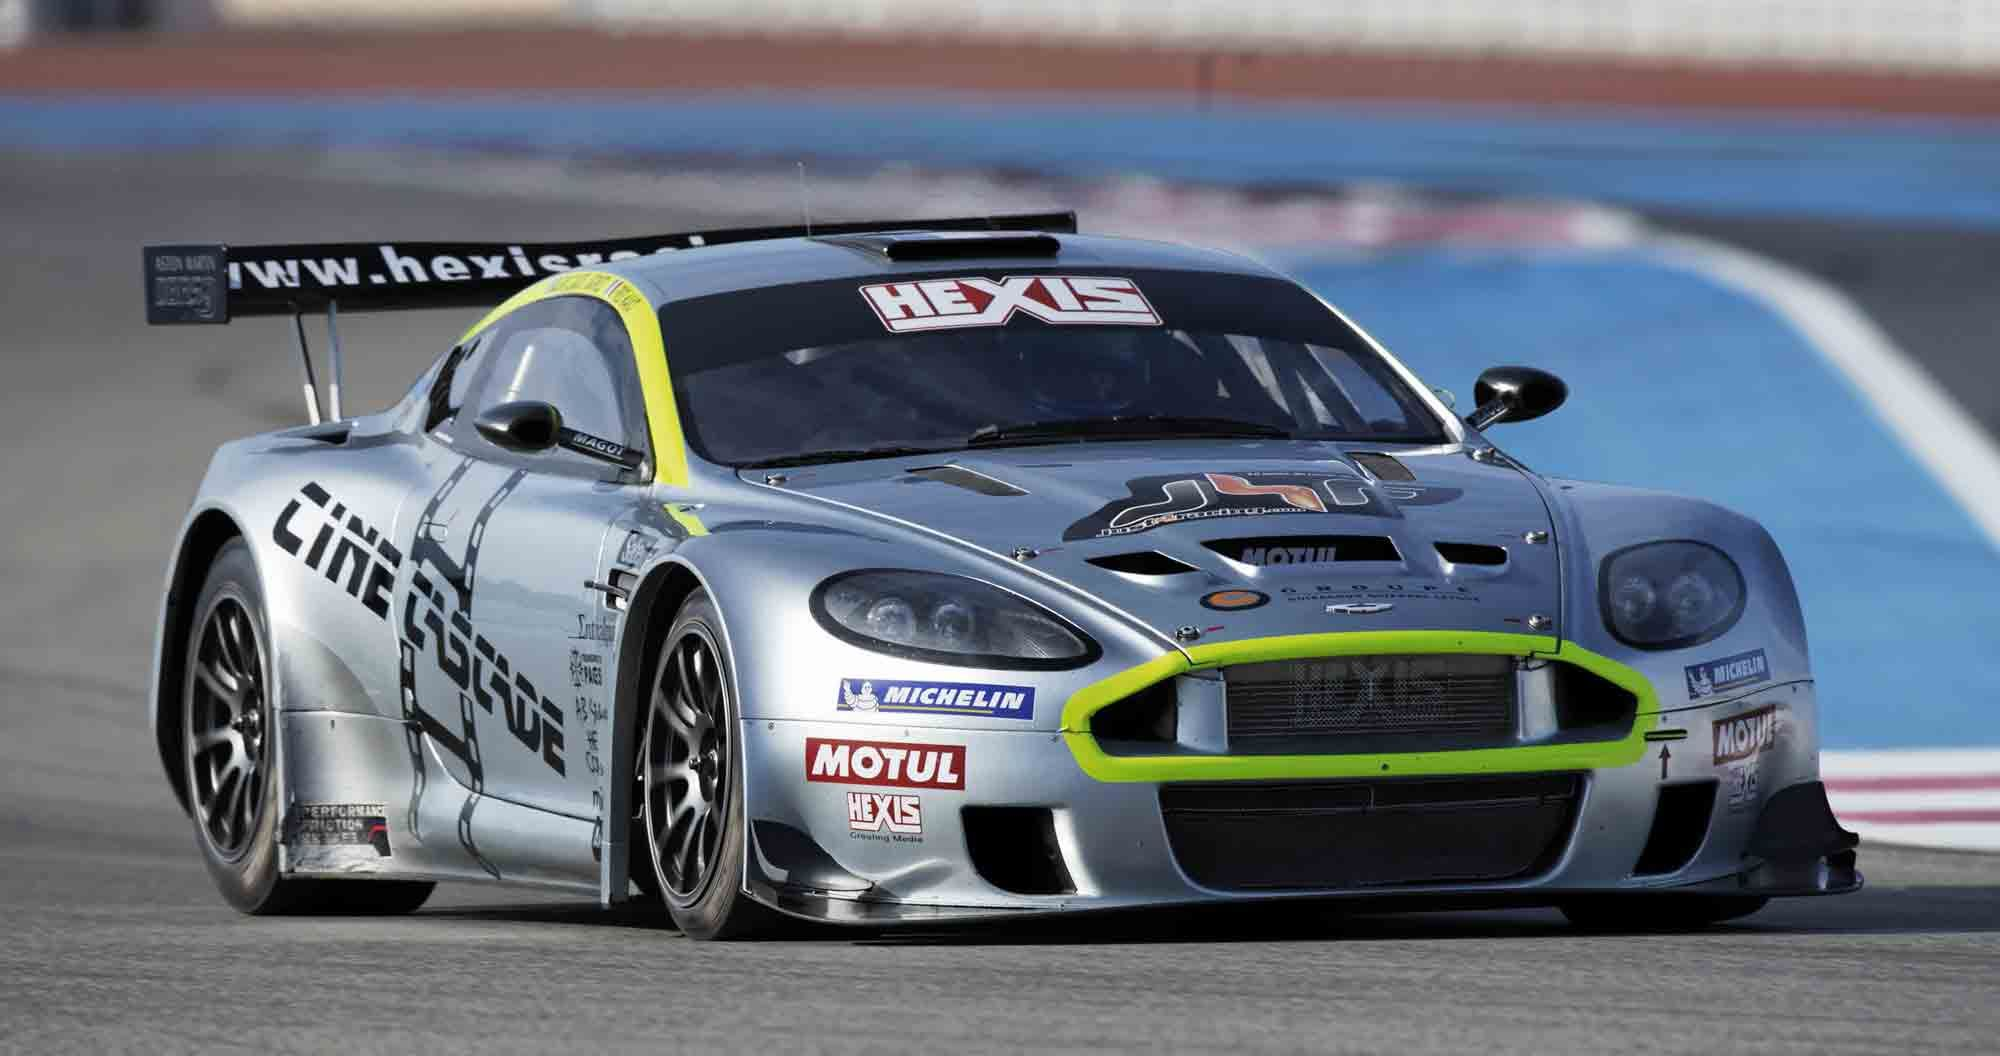 aston martin racing recherche google auto racing aston martin racing cars. Black Bedroom Furniture Sets. Home Design Ideas